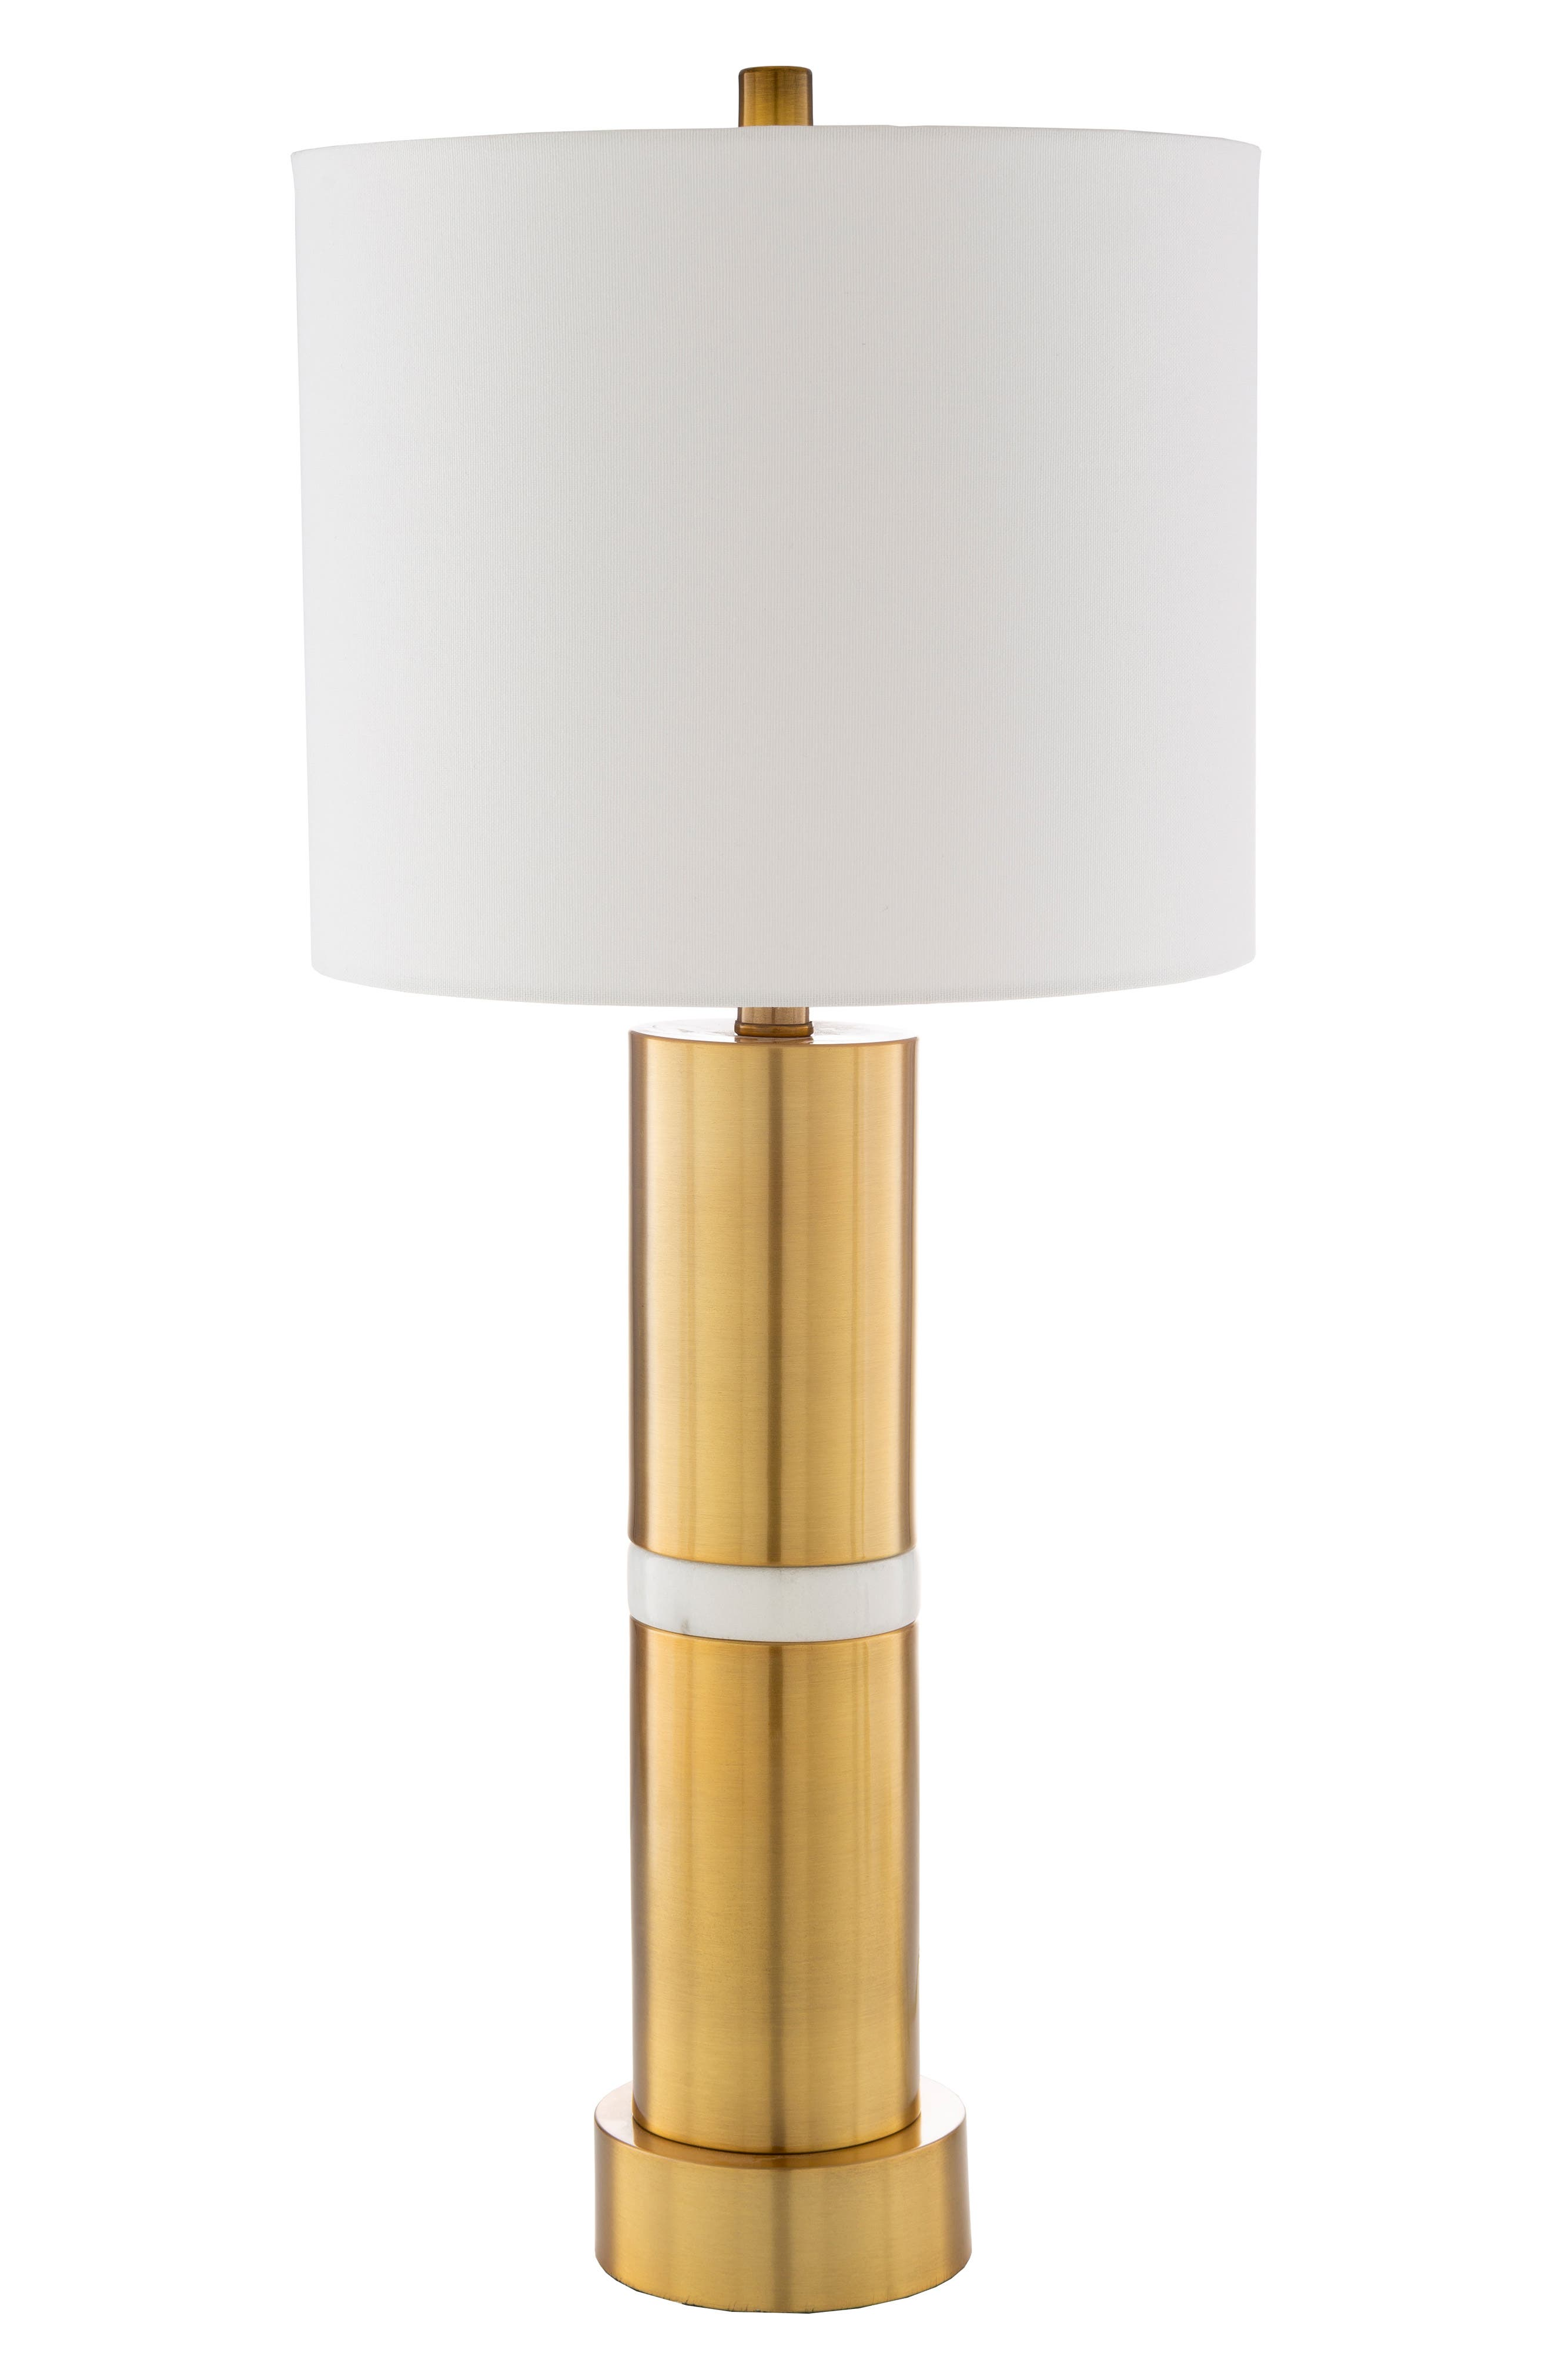 Surya Home Yorkshire Table Lamp